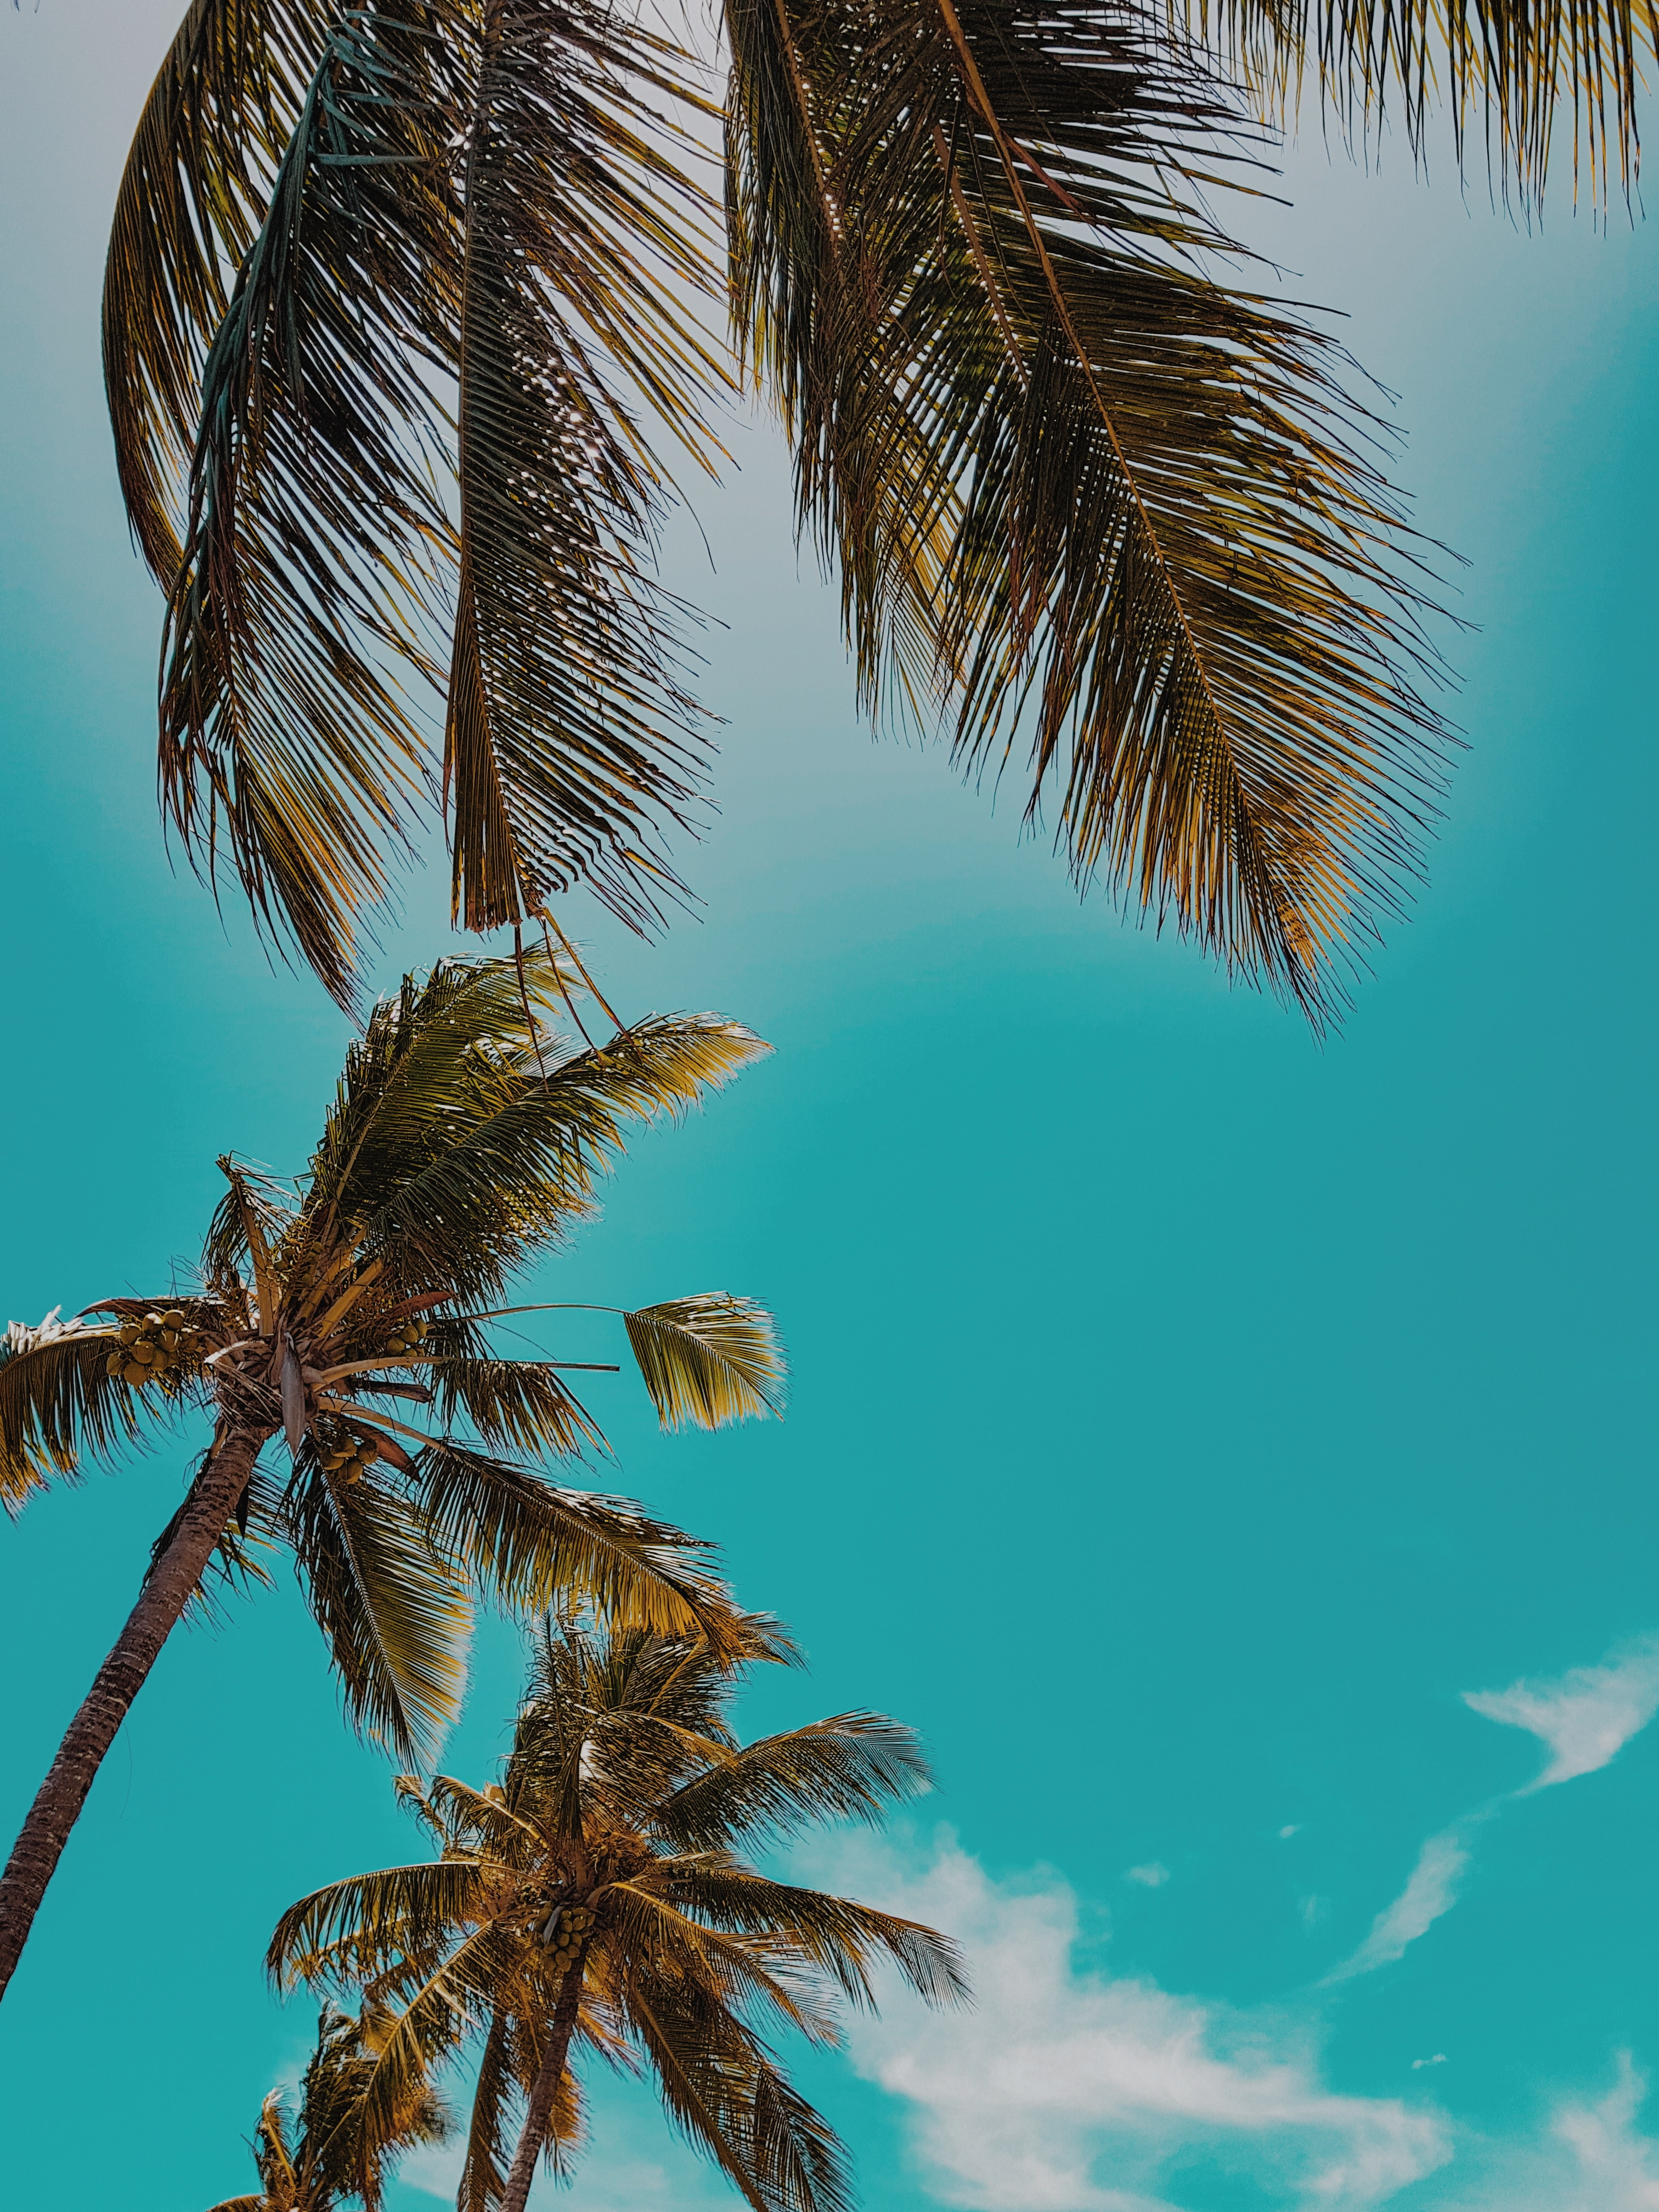 145554 download wallpaper Nature, Tops, Top, Sky, Tropics, Summer, Palms screensavers and pictures for free